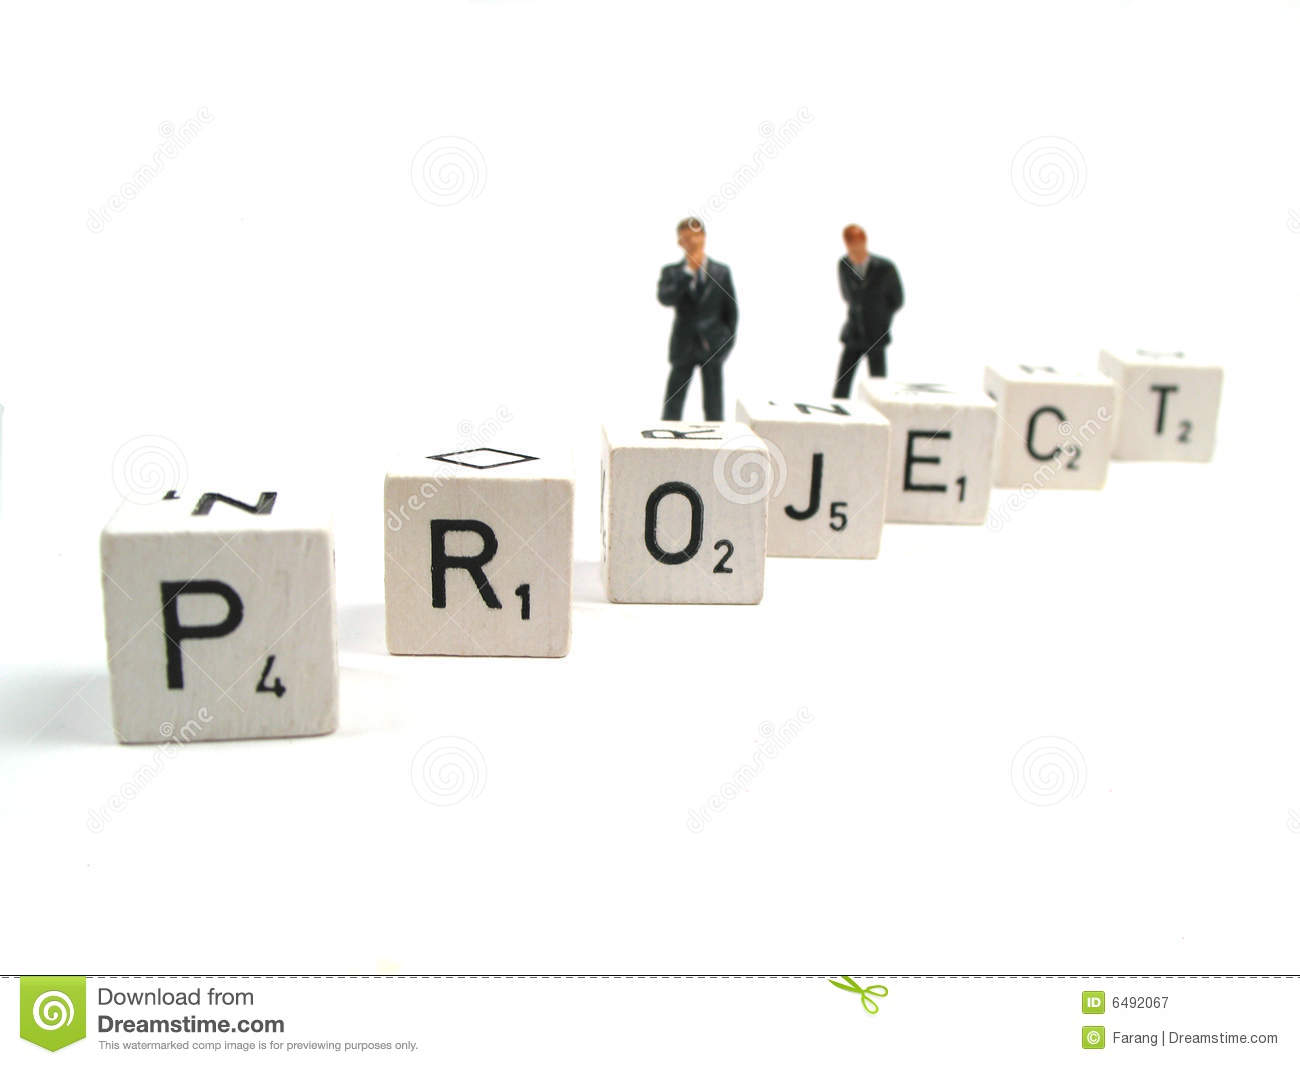 Running a project